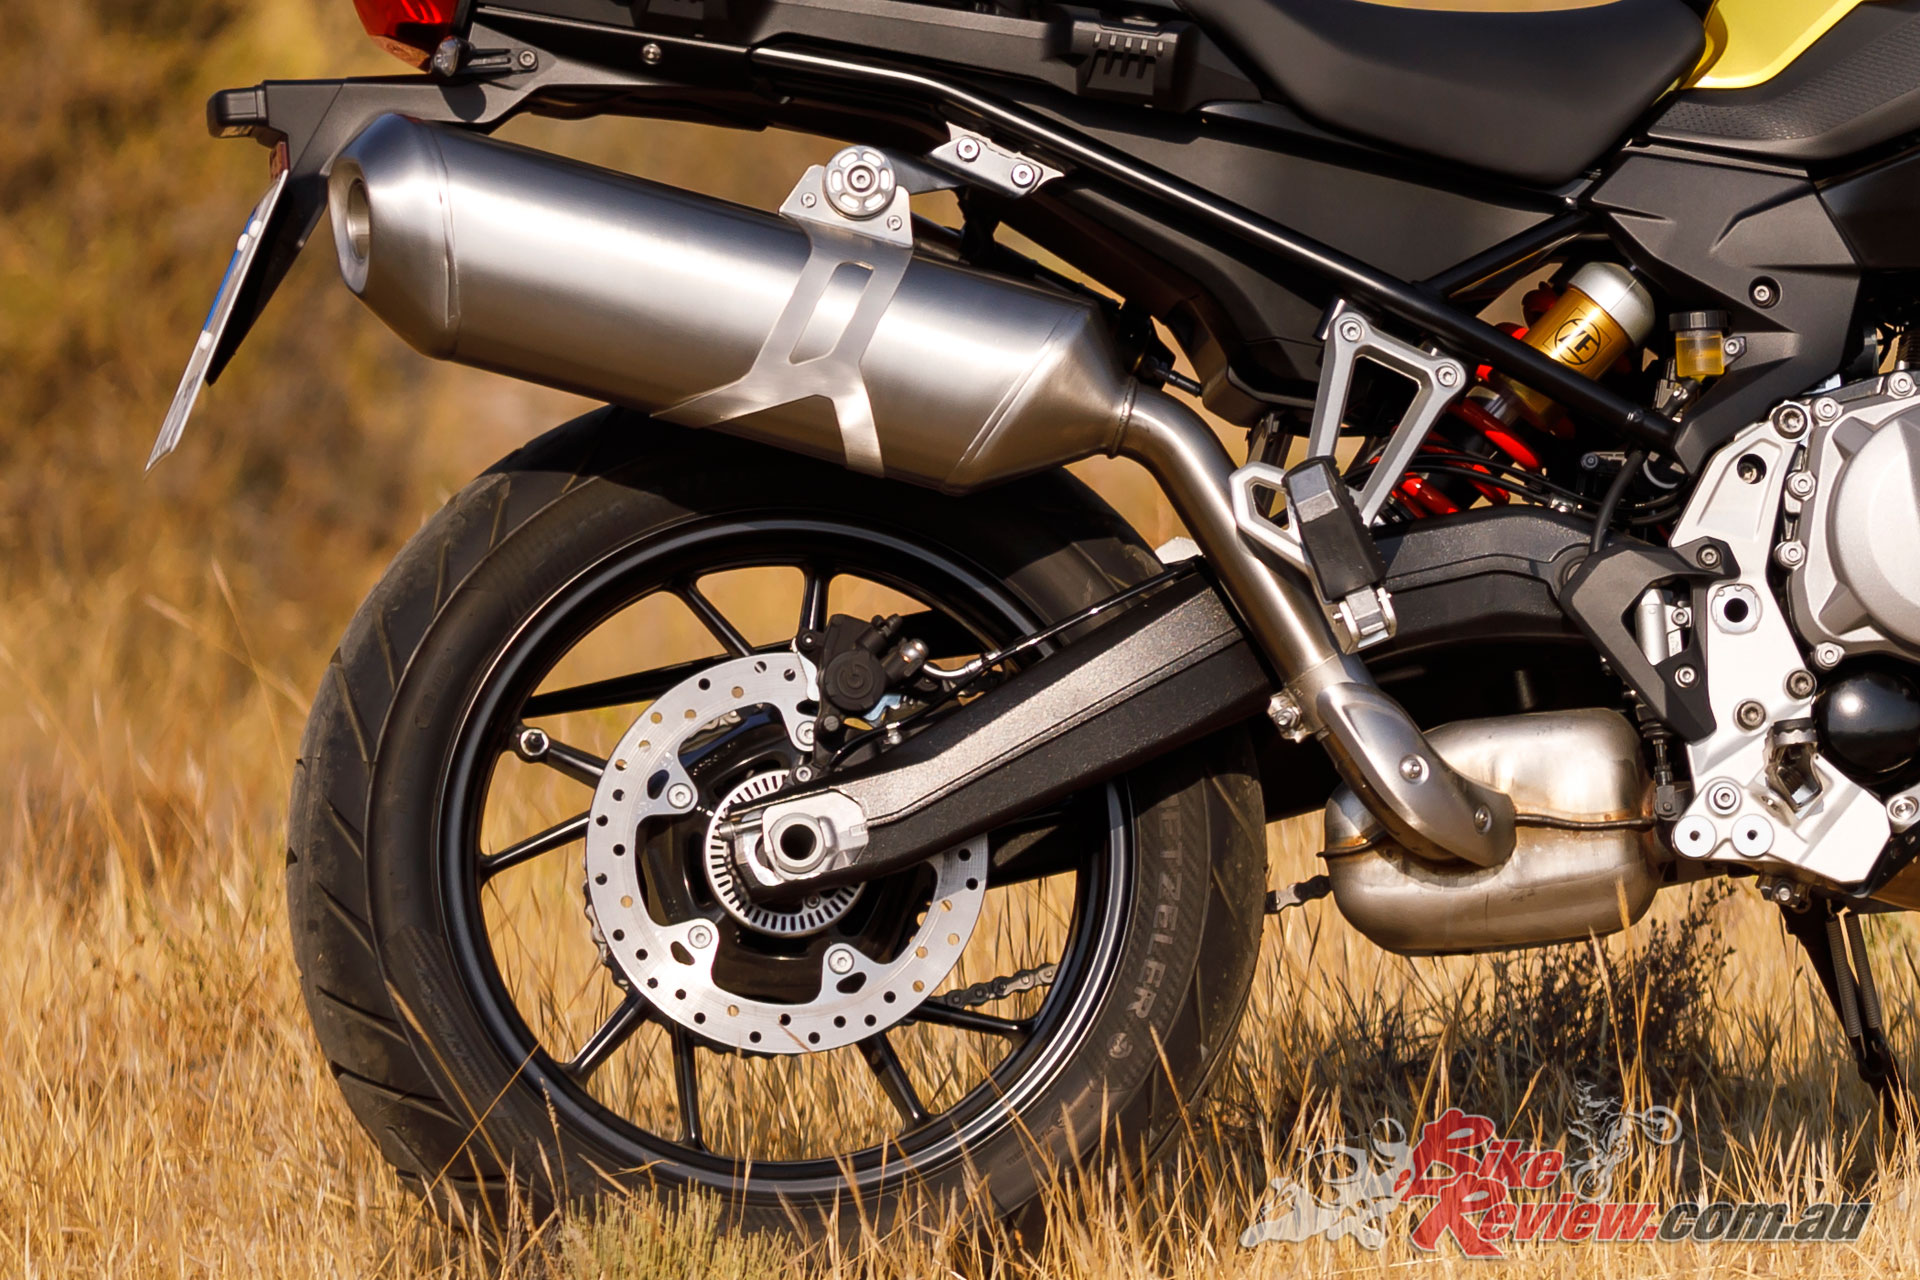 Suspension is also more compliant than the 850 and features shorter travel at both ends